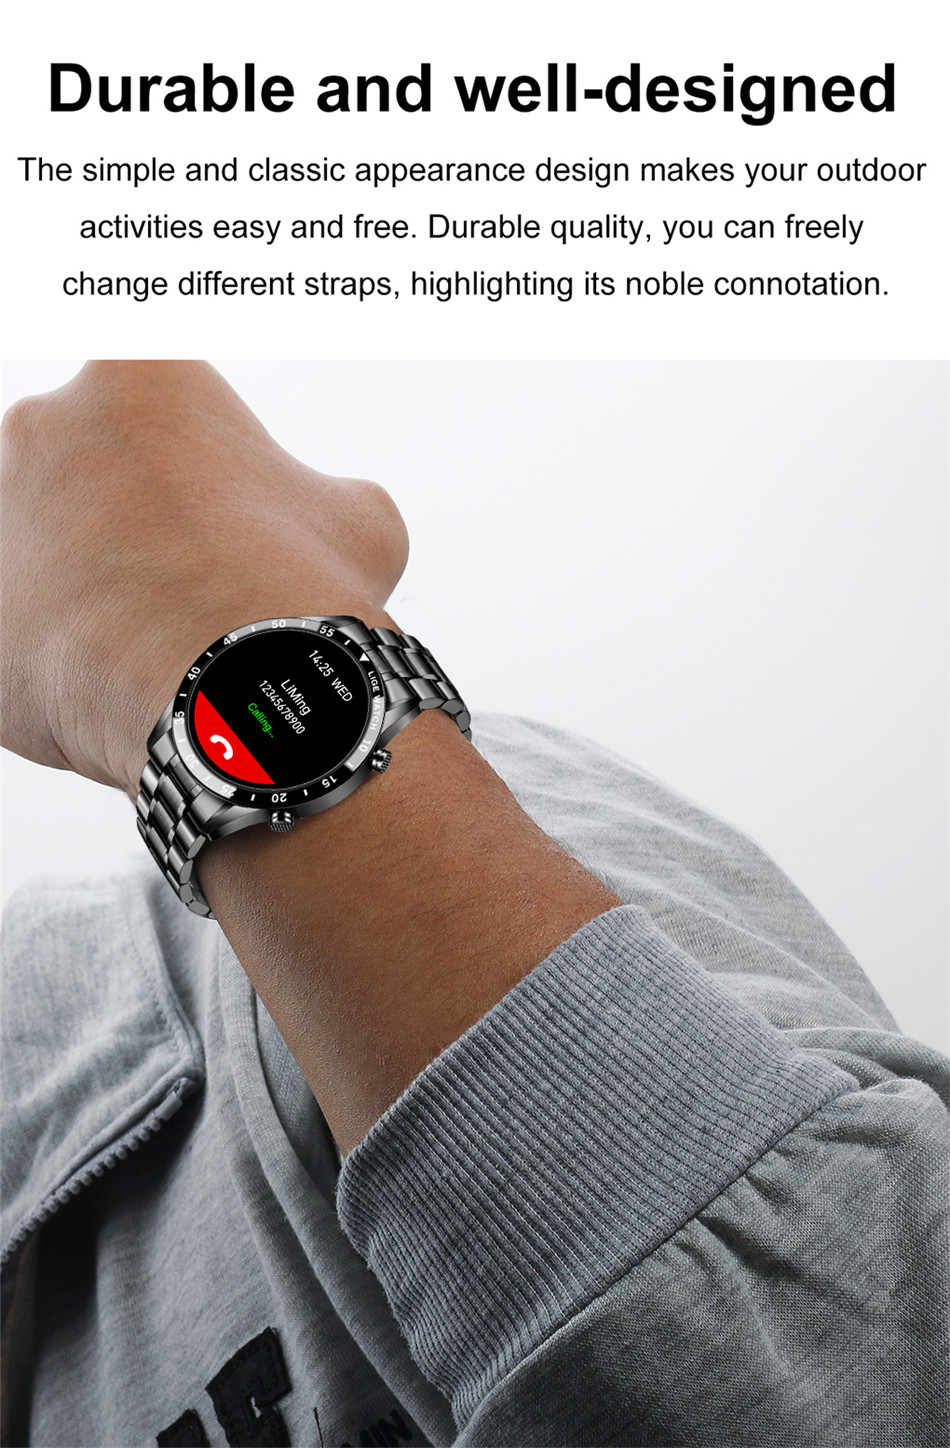 H030c1534918a414bb20816ceb3f59f65C LIGE 2020 New Smart Watch Men Full Touch Screen Sports Fitness Watch IP67 Waterproof Bluetooth For Android ios smartwatch Mens